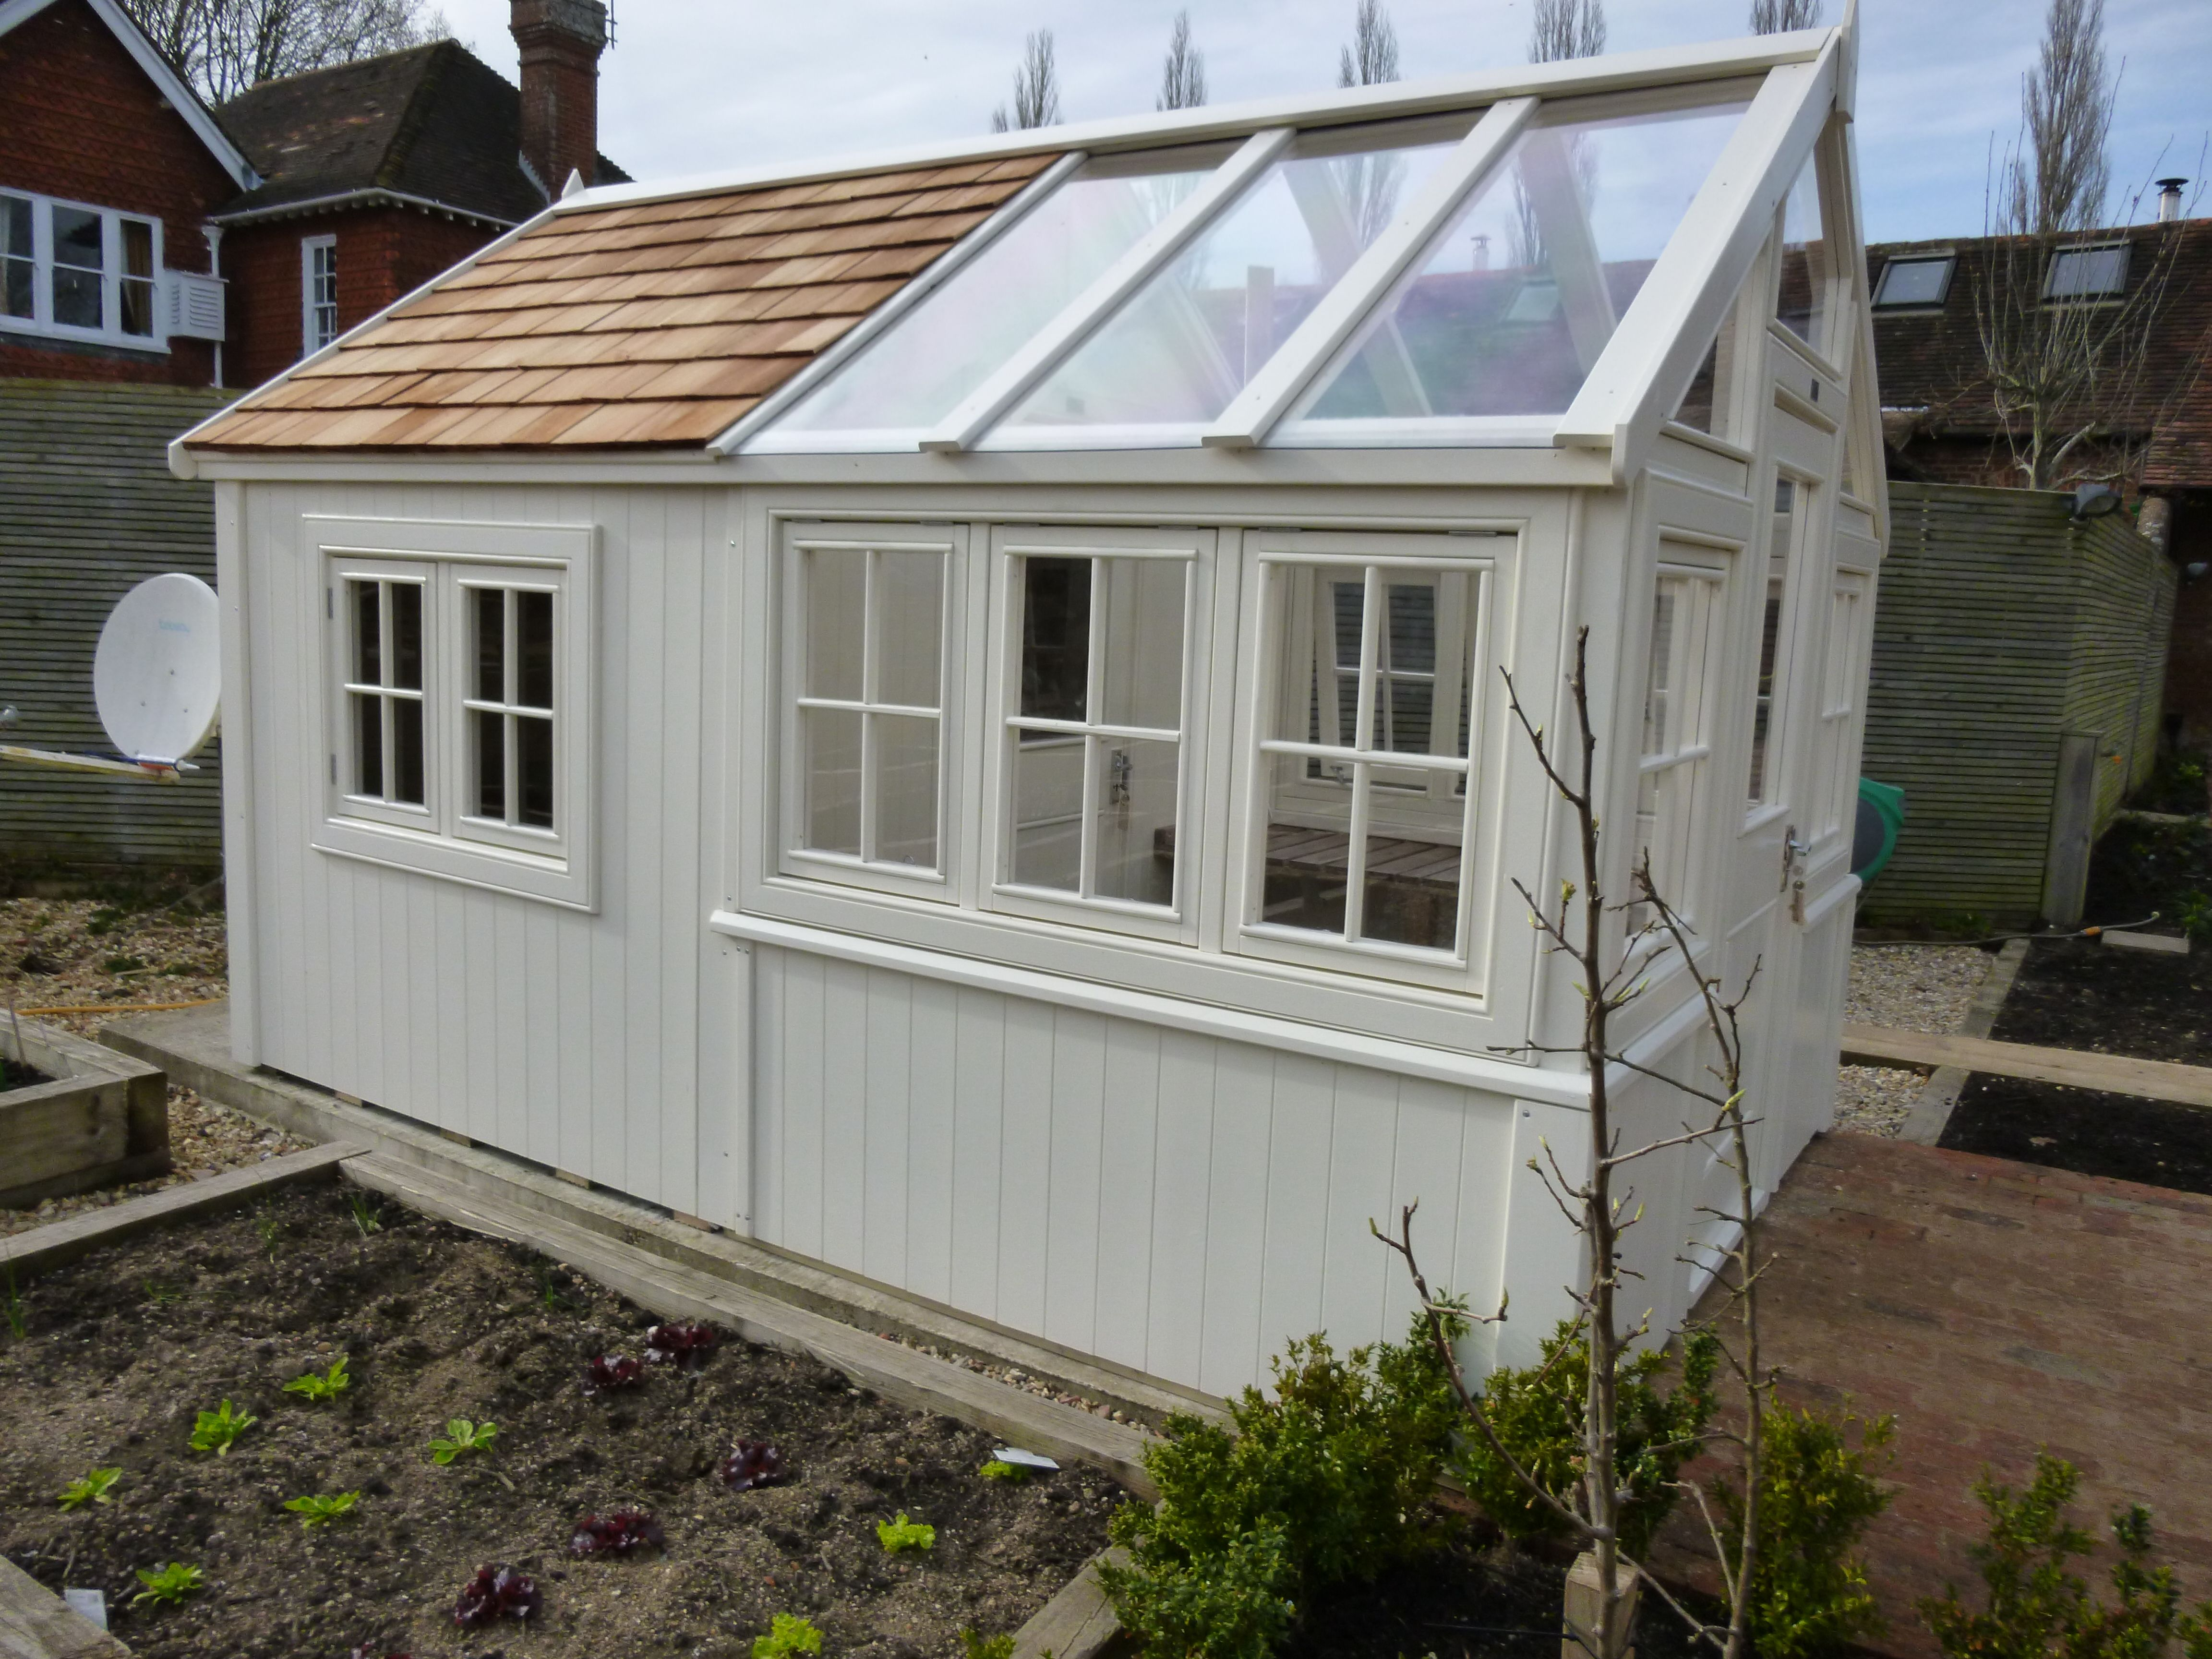 bespoke greenhouse combined posh shed - Garden Sheds Greenhouses Combined